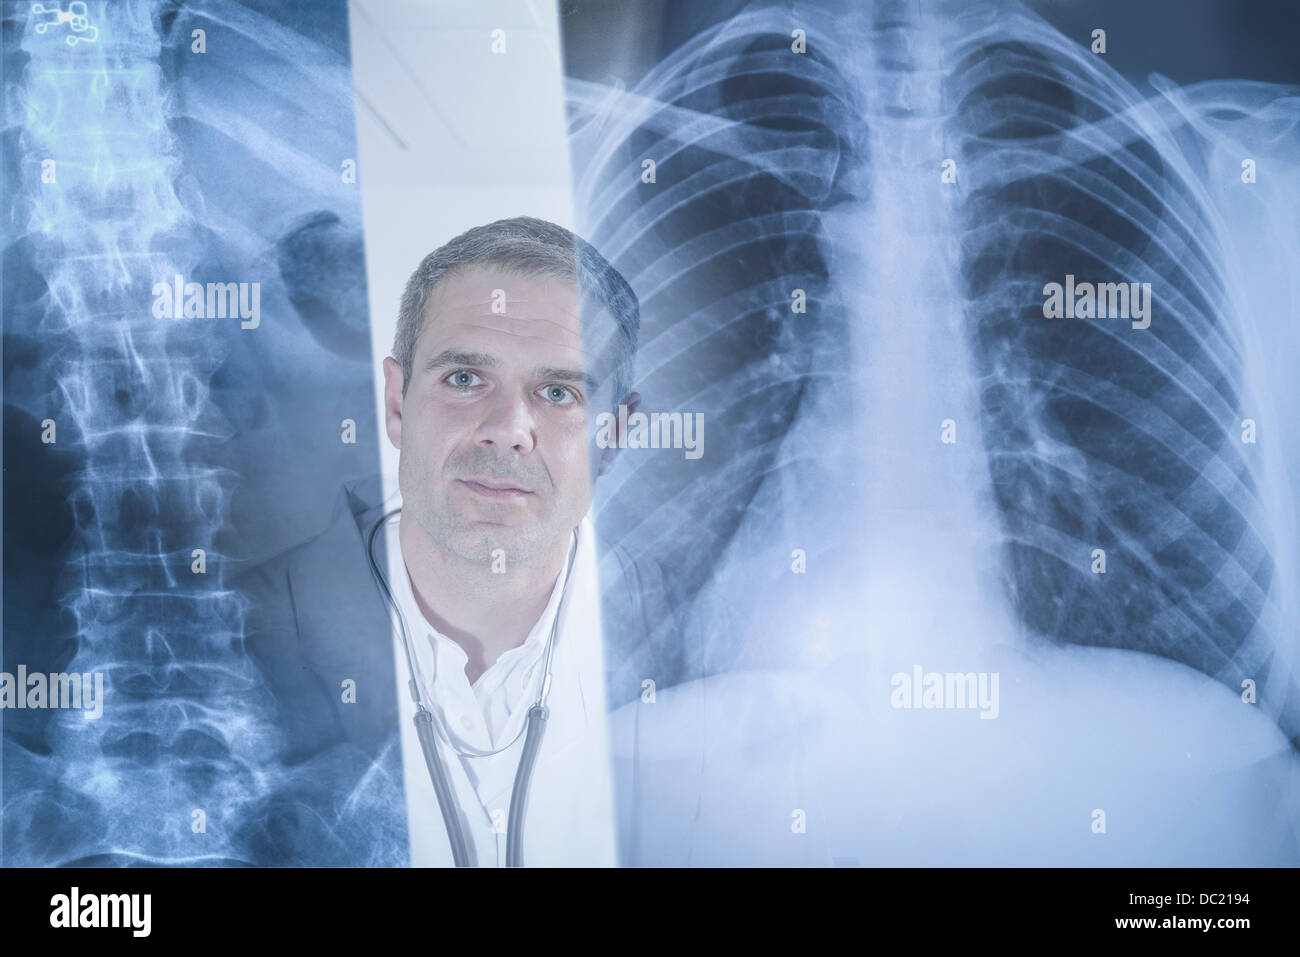 Doctor examining xray results displayed on screen - Stock Image